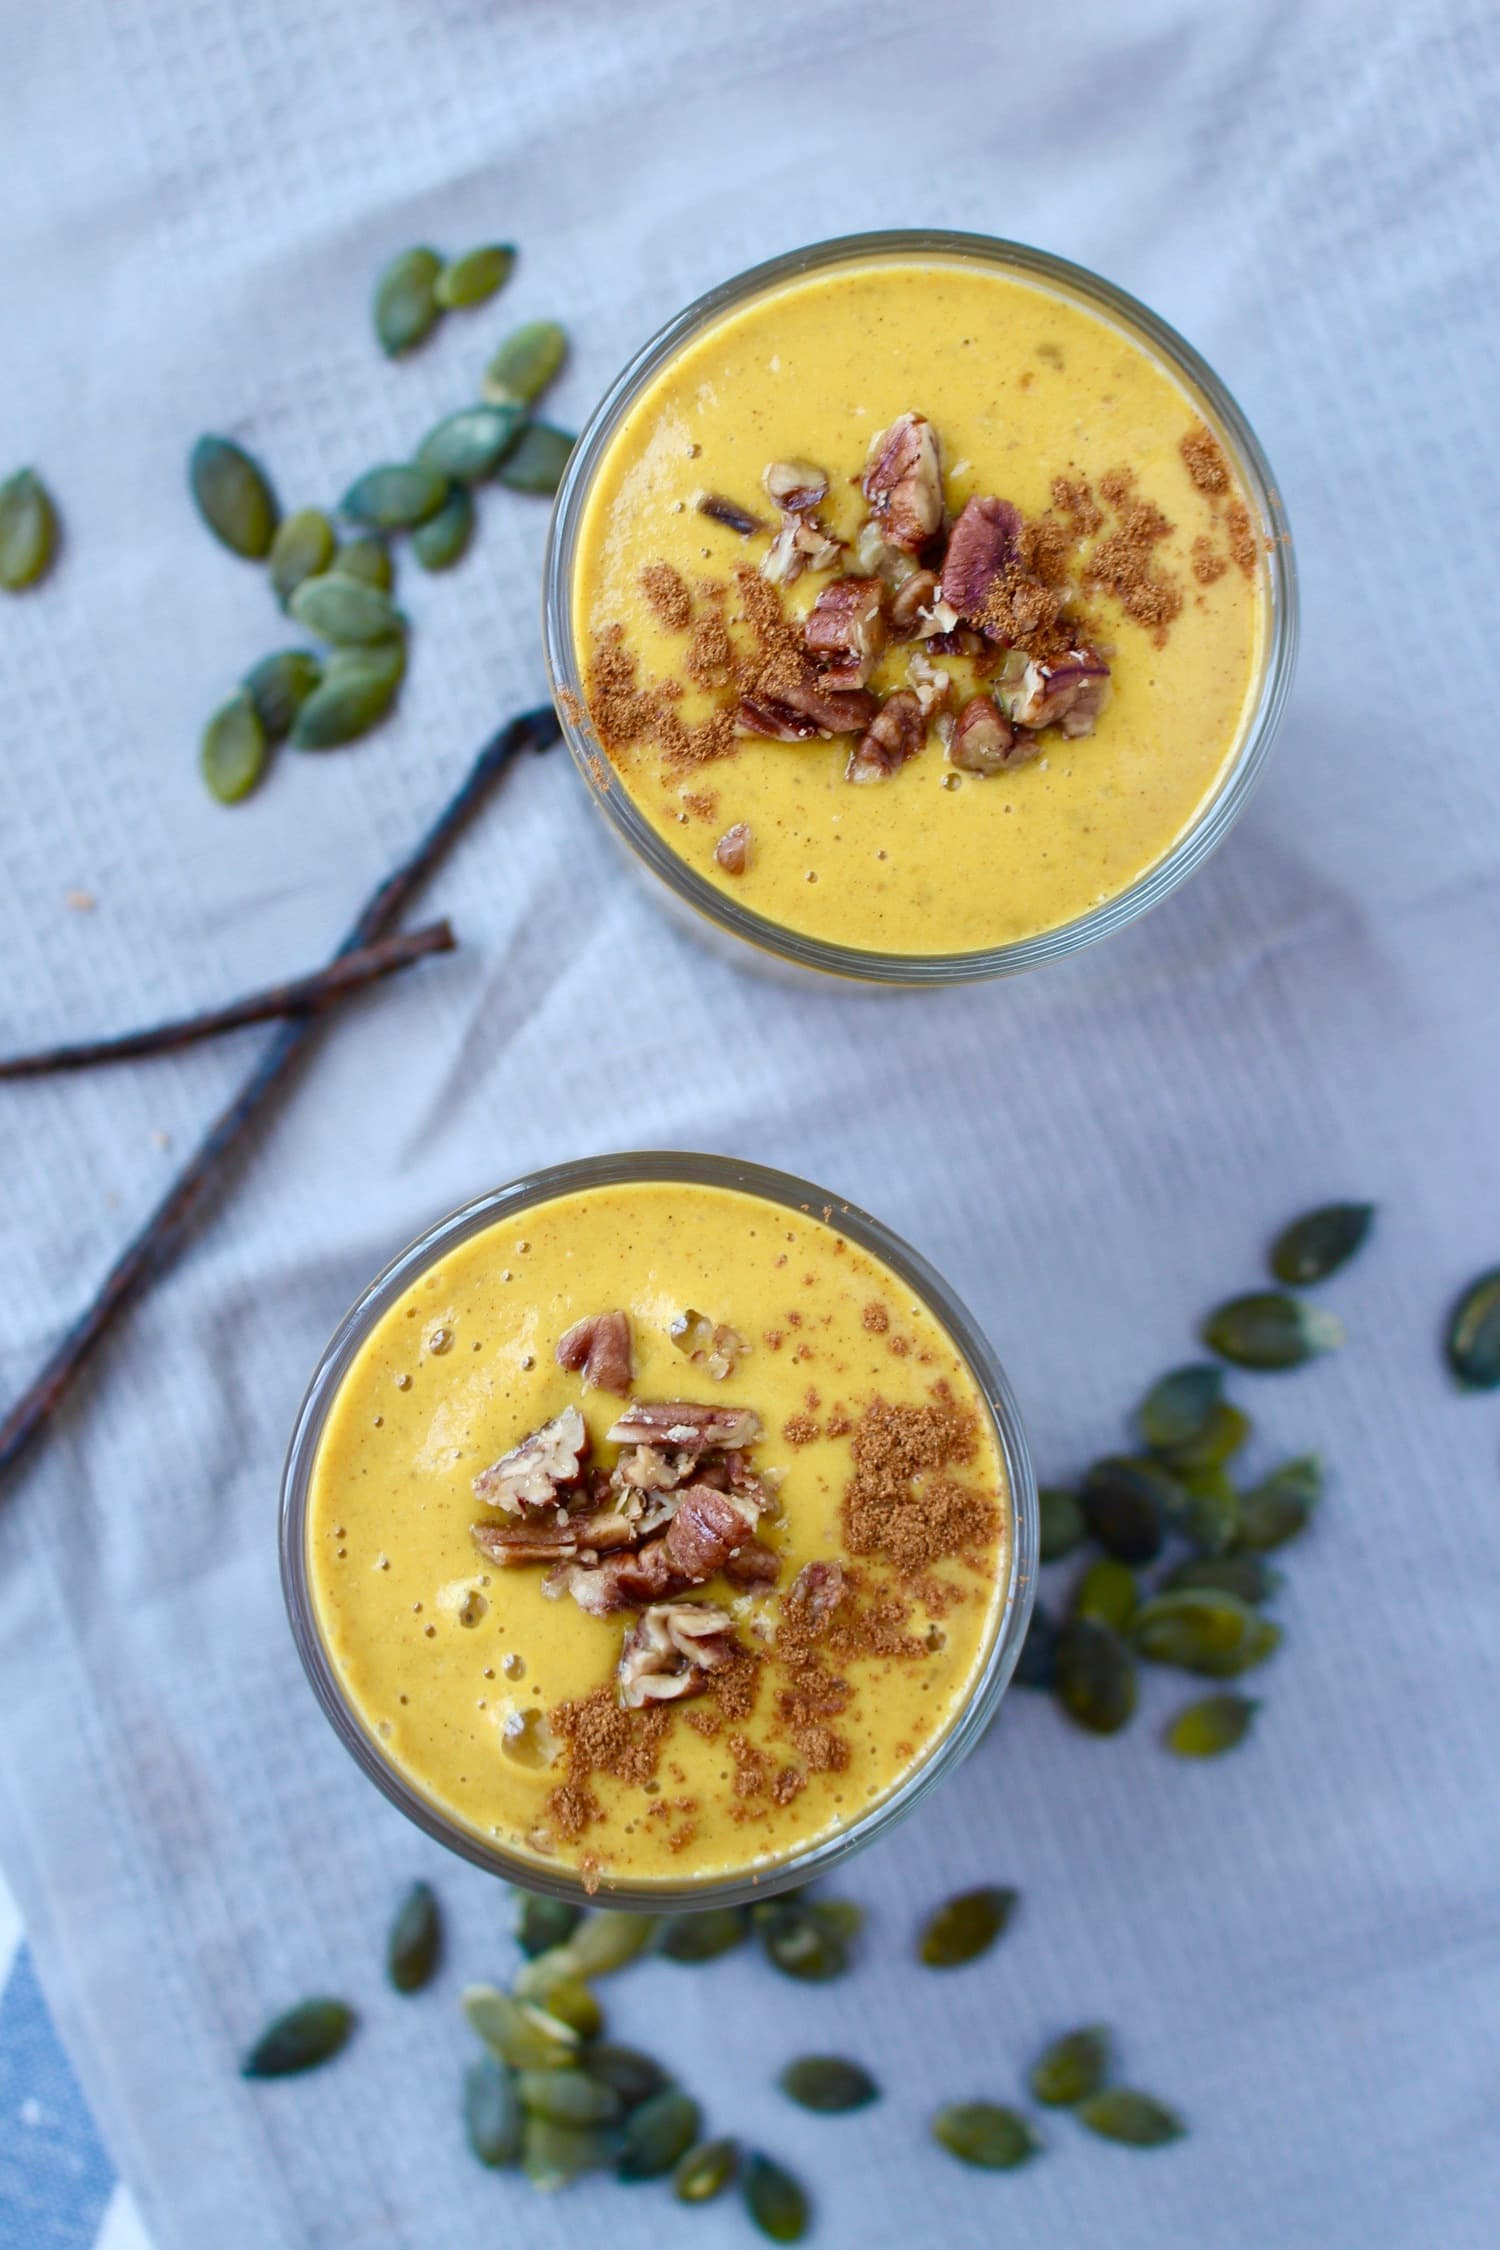 Banana-Less Pumpkin Pie Smoothie topped with cinnamon and cacao nibs